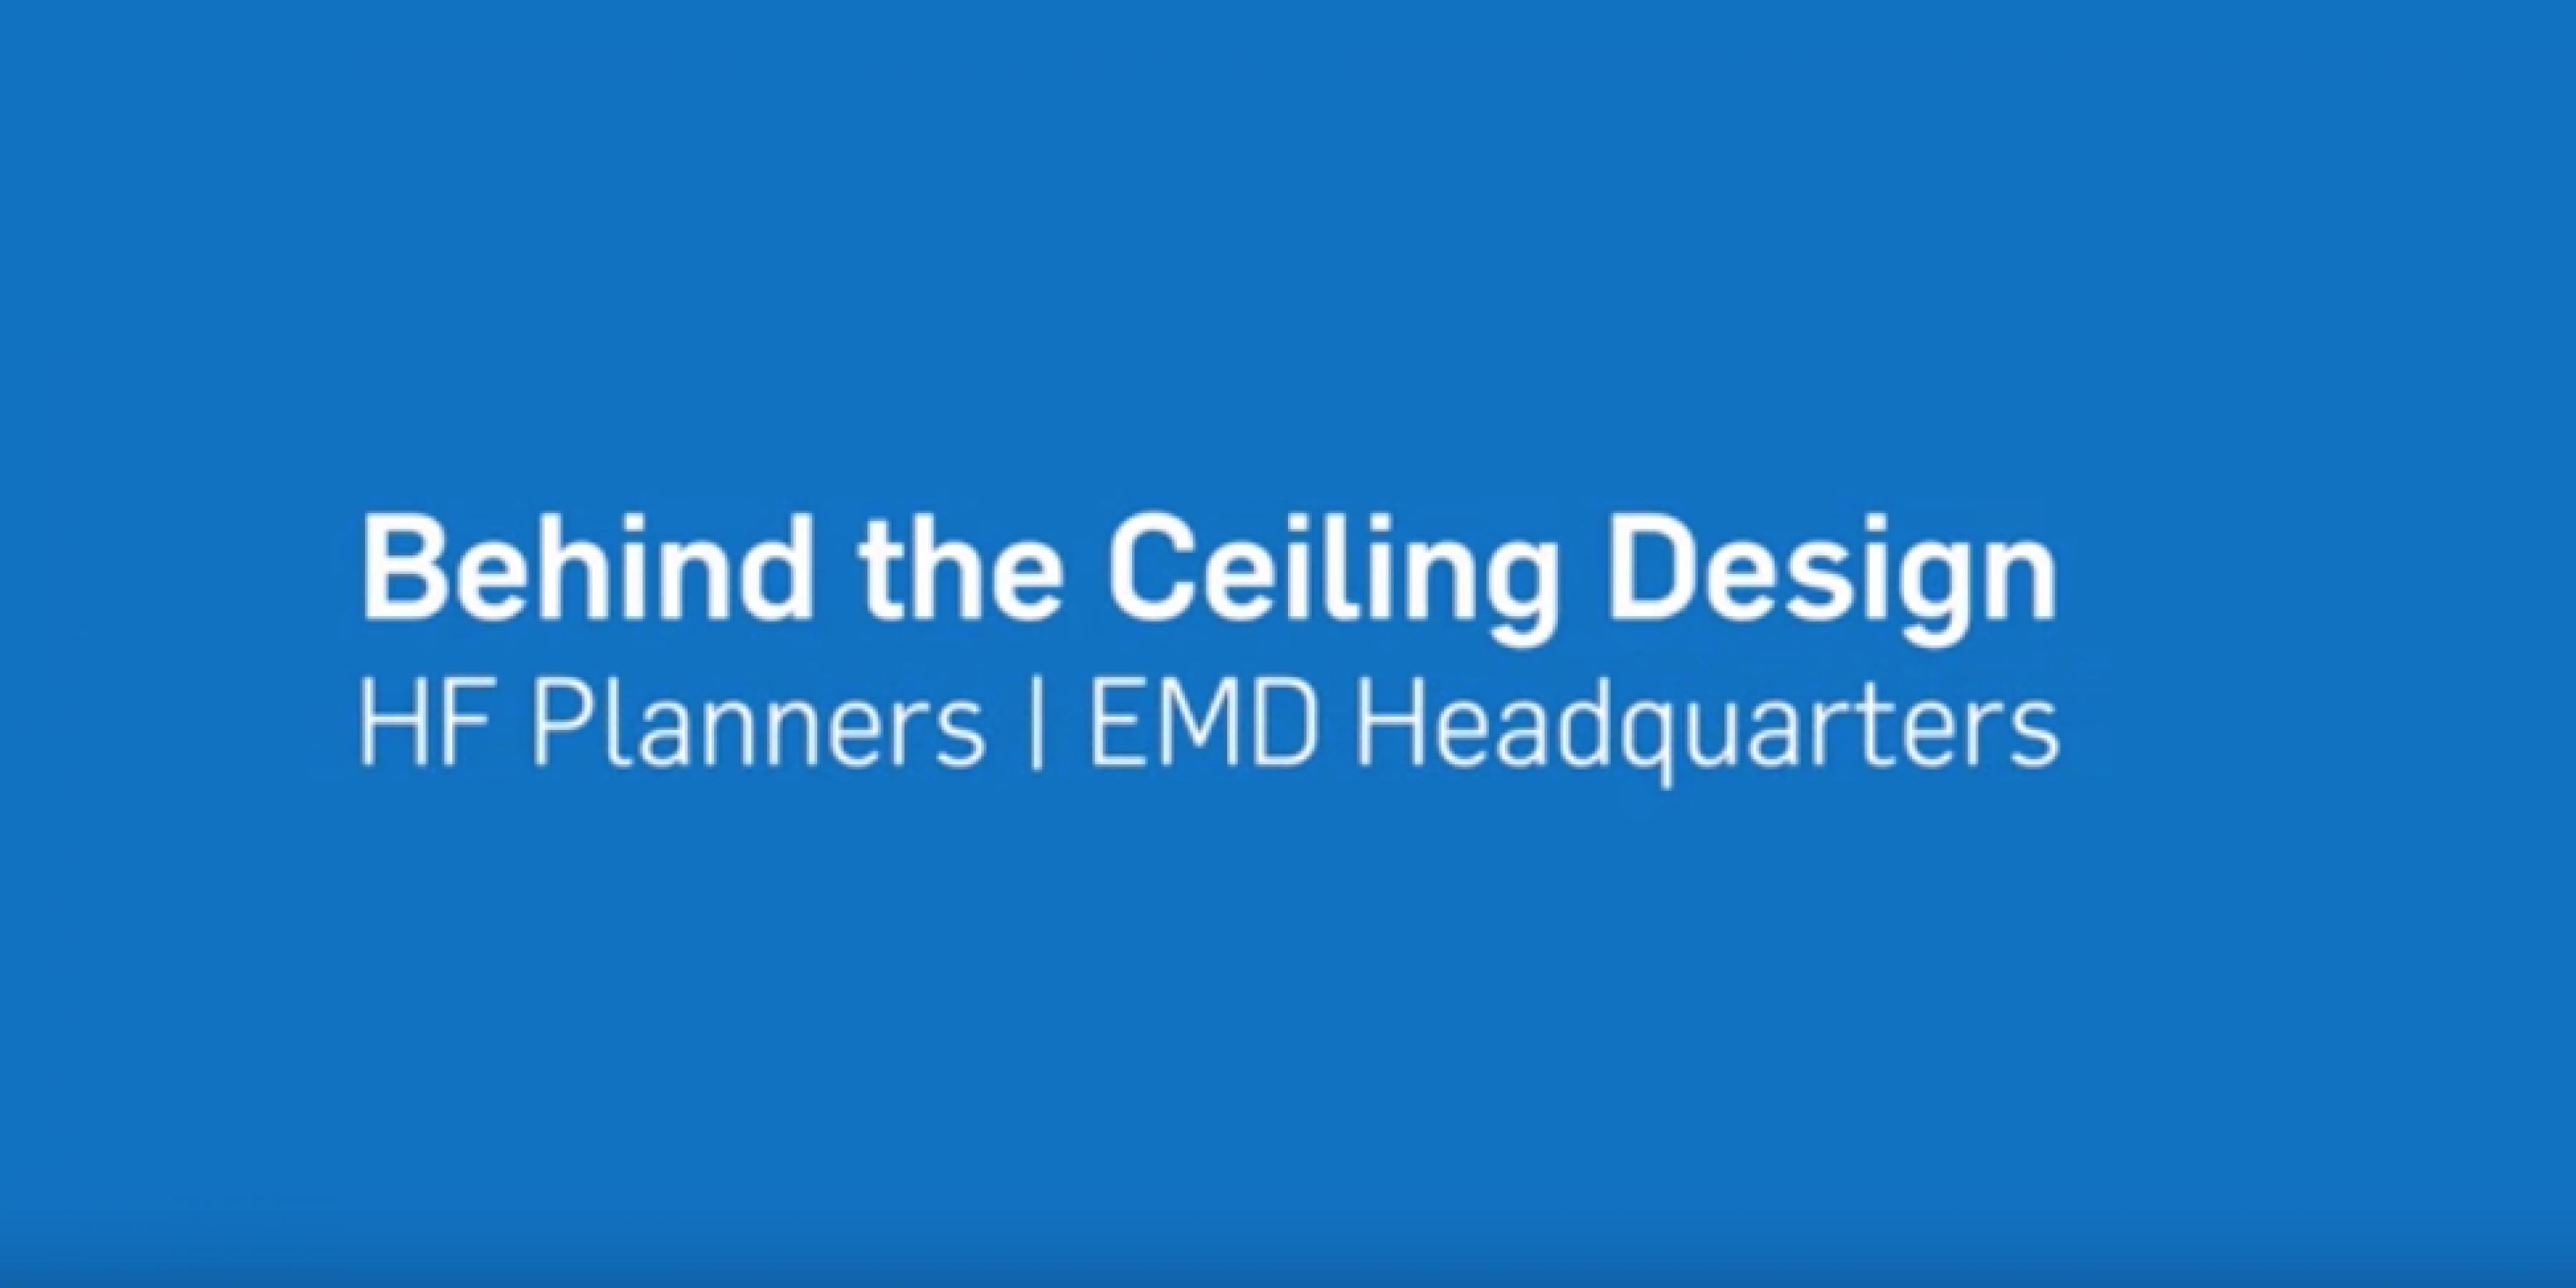 Behind the Ceiling Design: The New EMD Headquarters